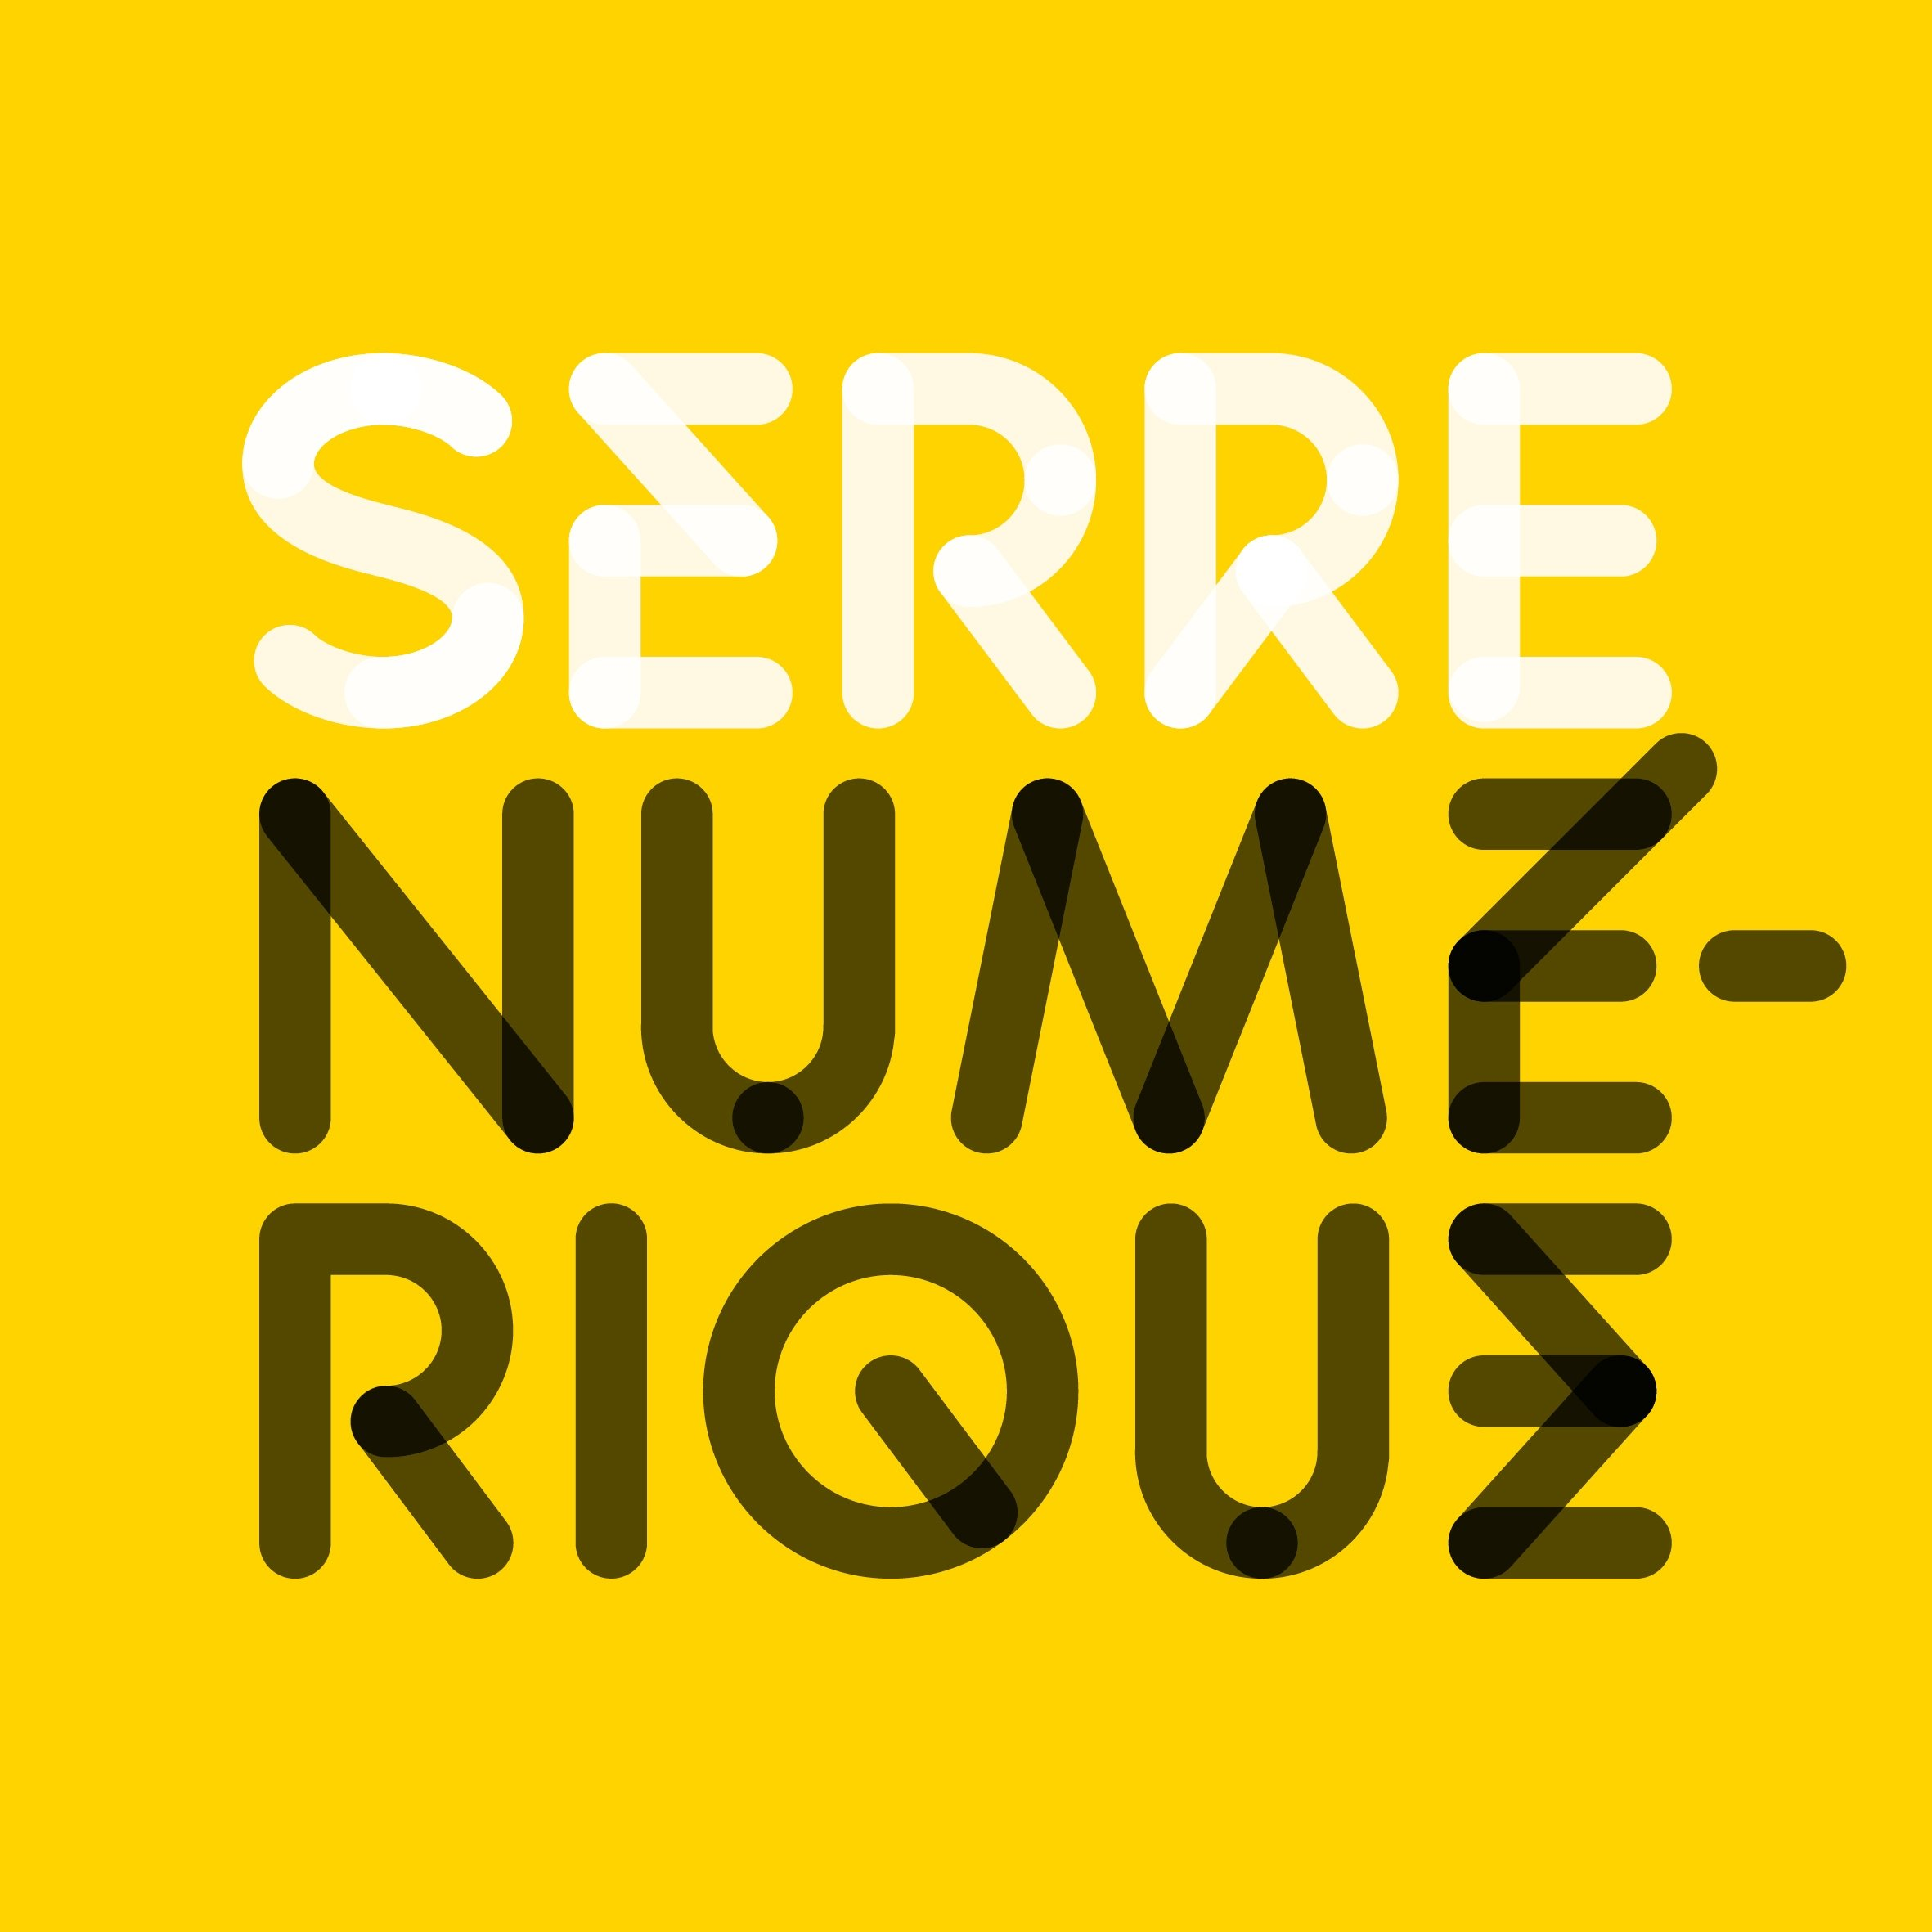 SERRENUMERIQUE-LOGO